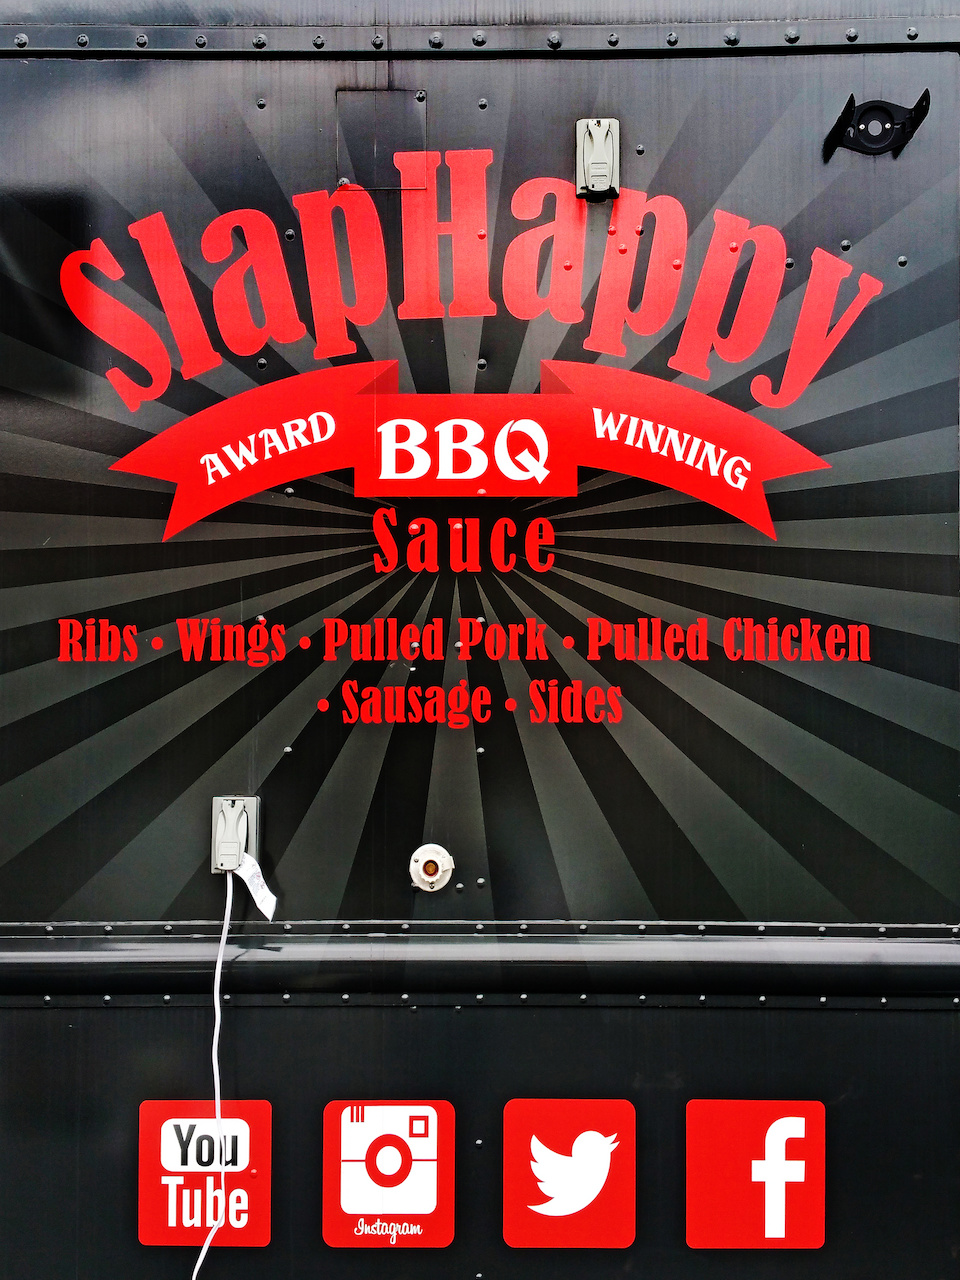 Follow SlapHappy BBQ on social media to keep up with their whereabouts!